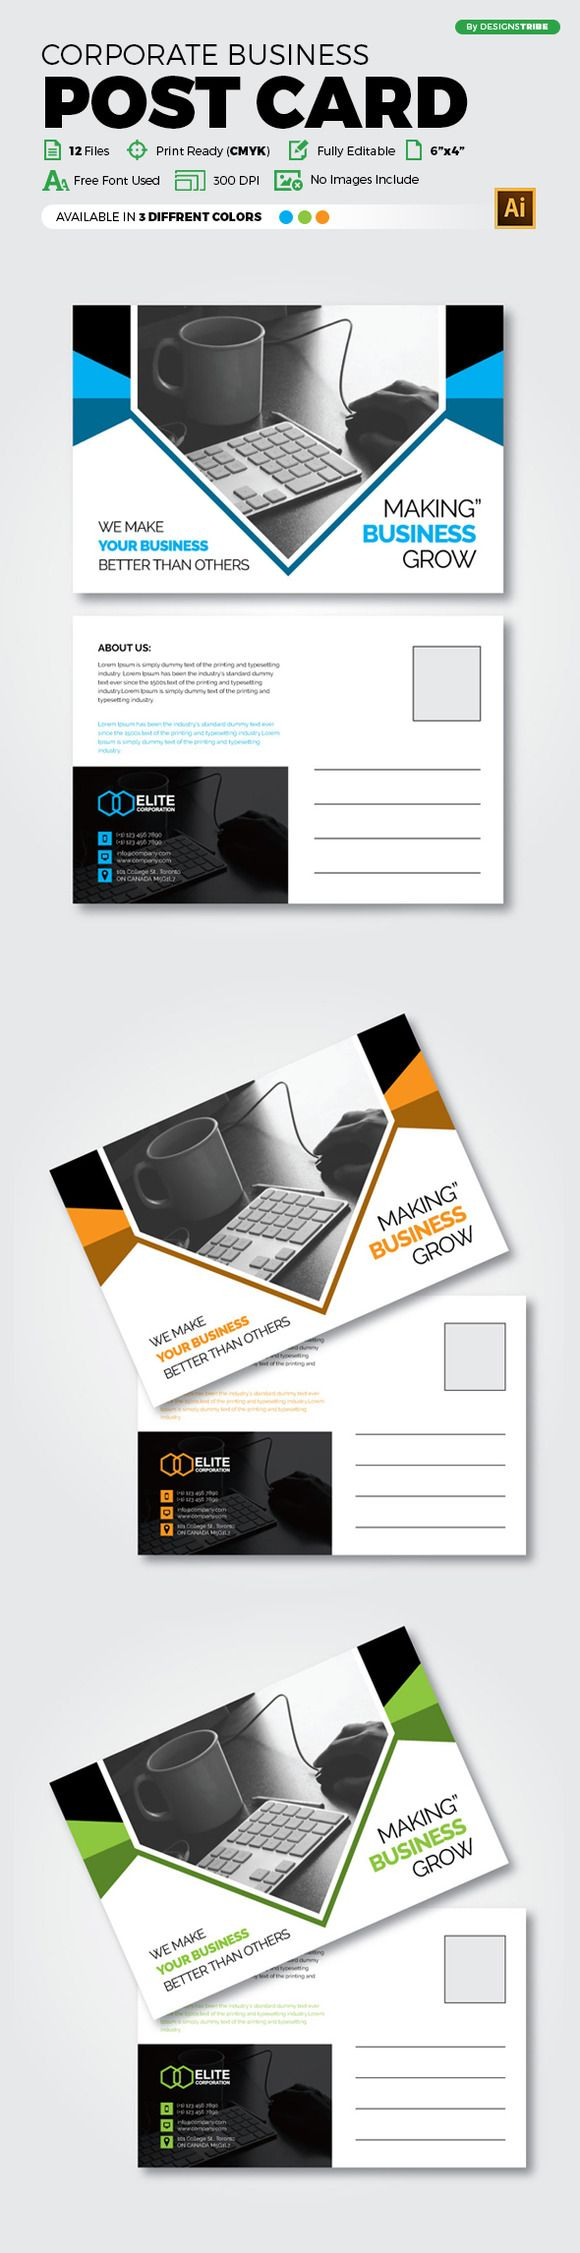 Best Post Card 8 CreativeWork247 - Fonts, Graphics, Themes ...